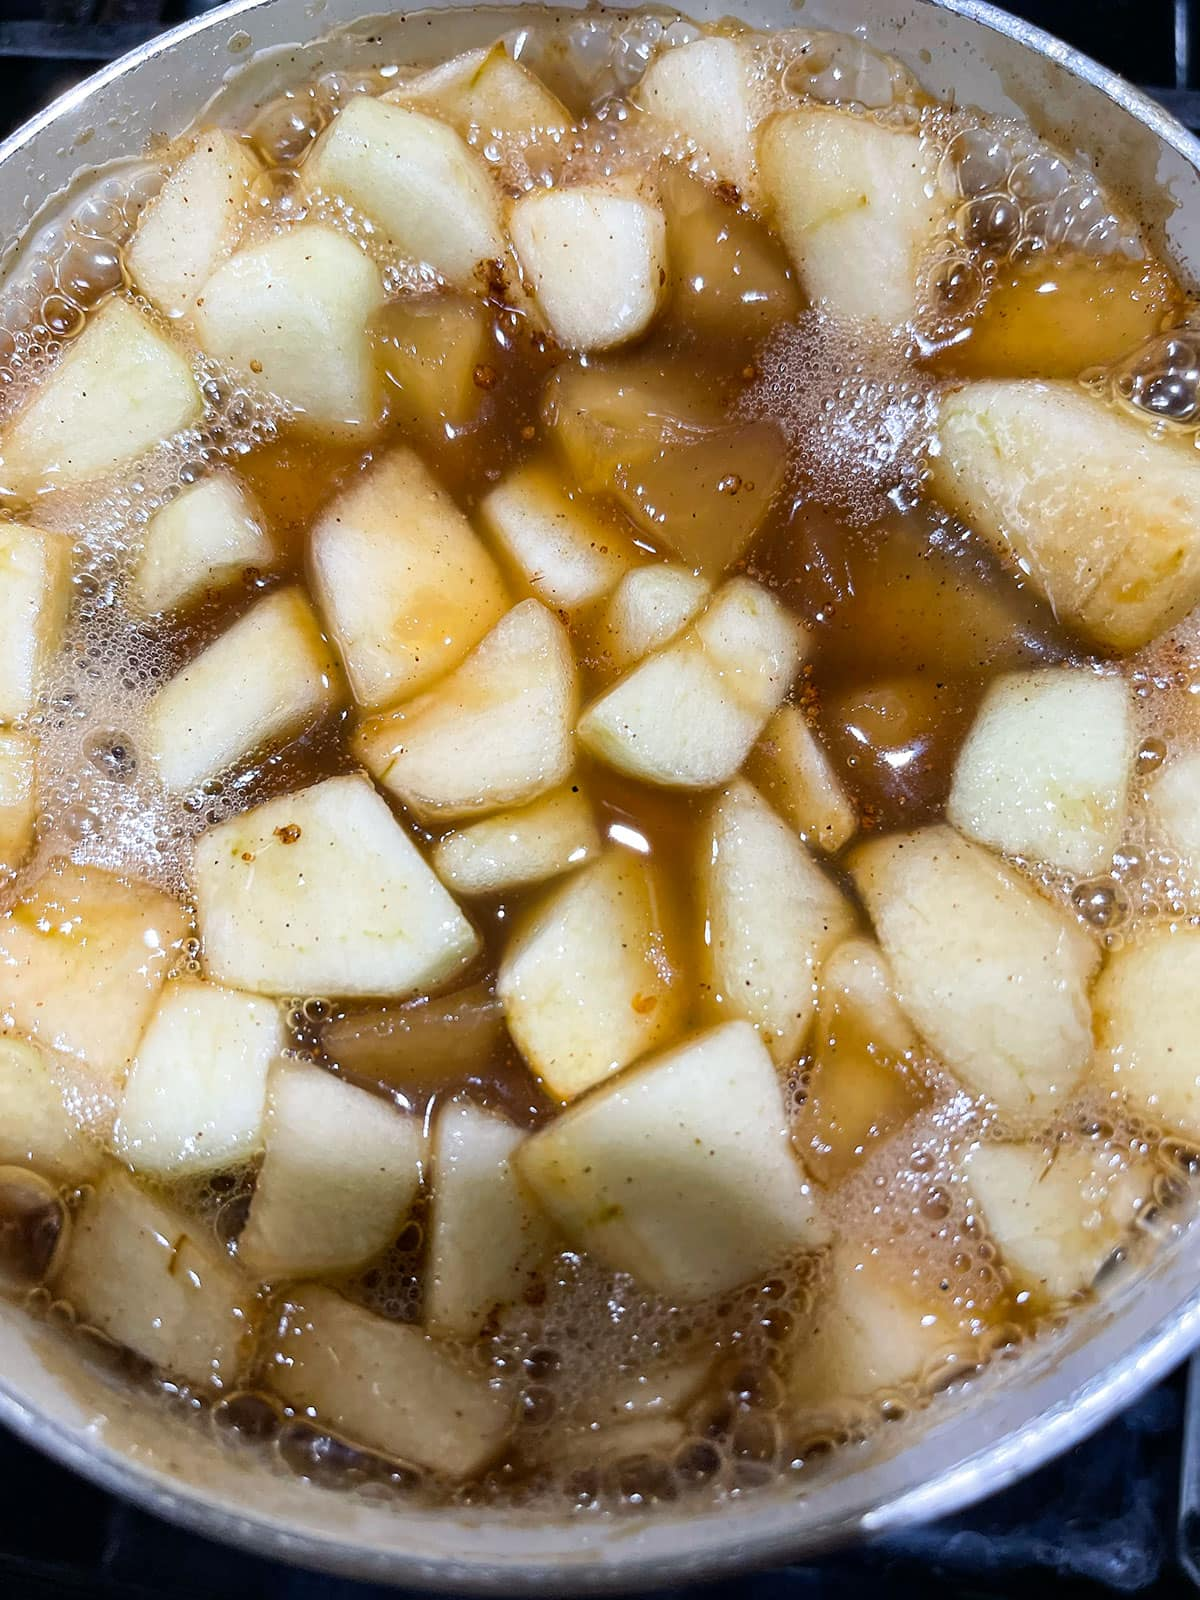 apple pie filling cooking in the pot